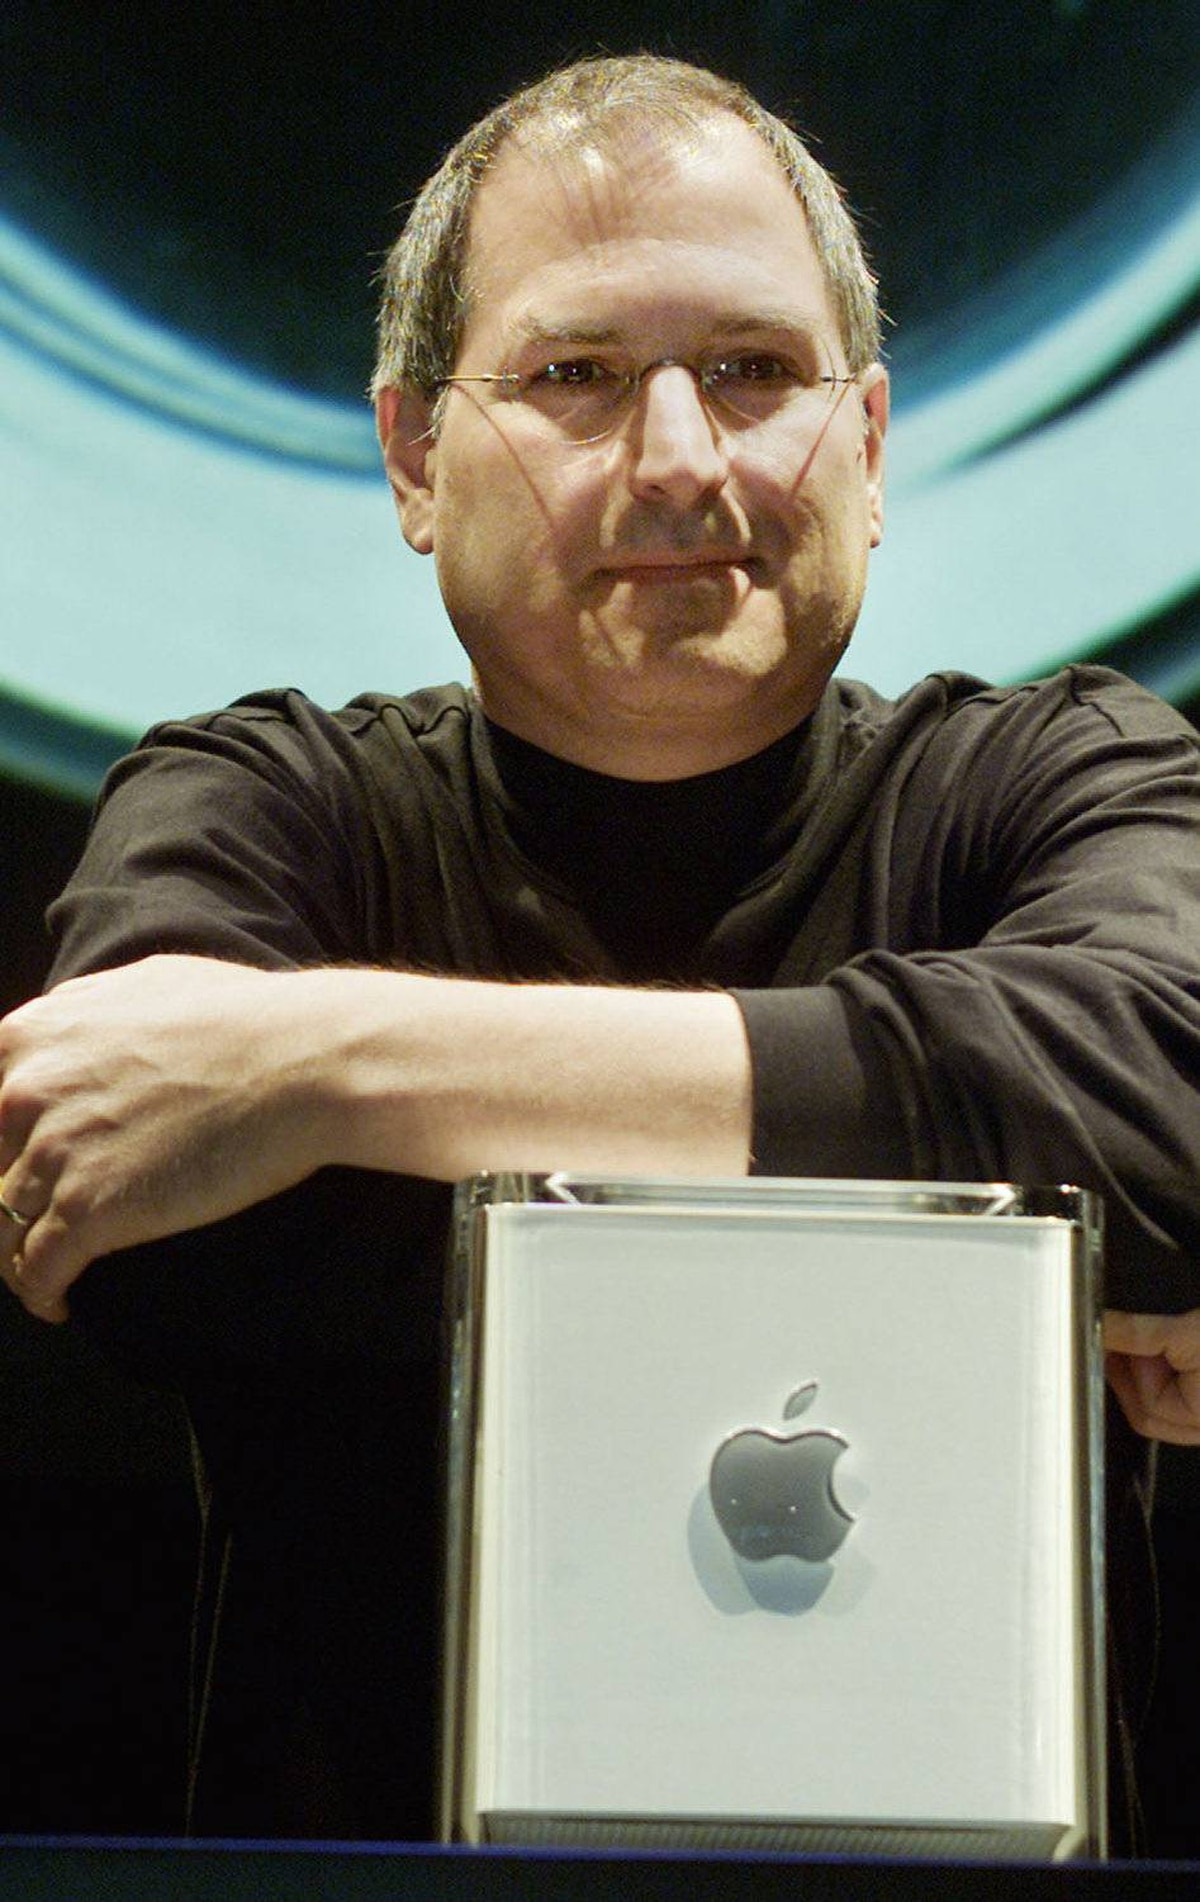 Apple Computer Inc. founder Steve Jobs poses with the company's new Power Mac G4 Cube, after his keynote adddress at the Macworld Conference and Exposition in New York on July 19. The G4 Cube, which Jobs said combines the power of the Power Mac G4 with the style and miniaturization of an iMac, comes in an 8-inch cube suspended in a clear enclosure.